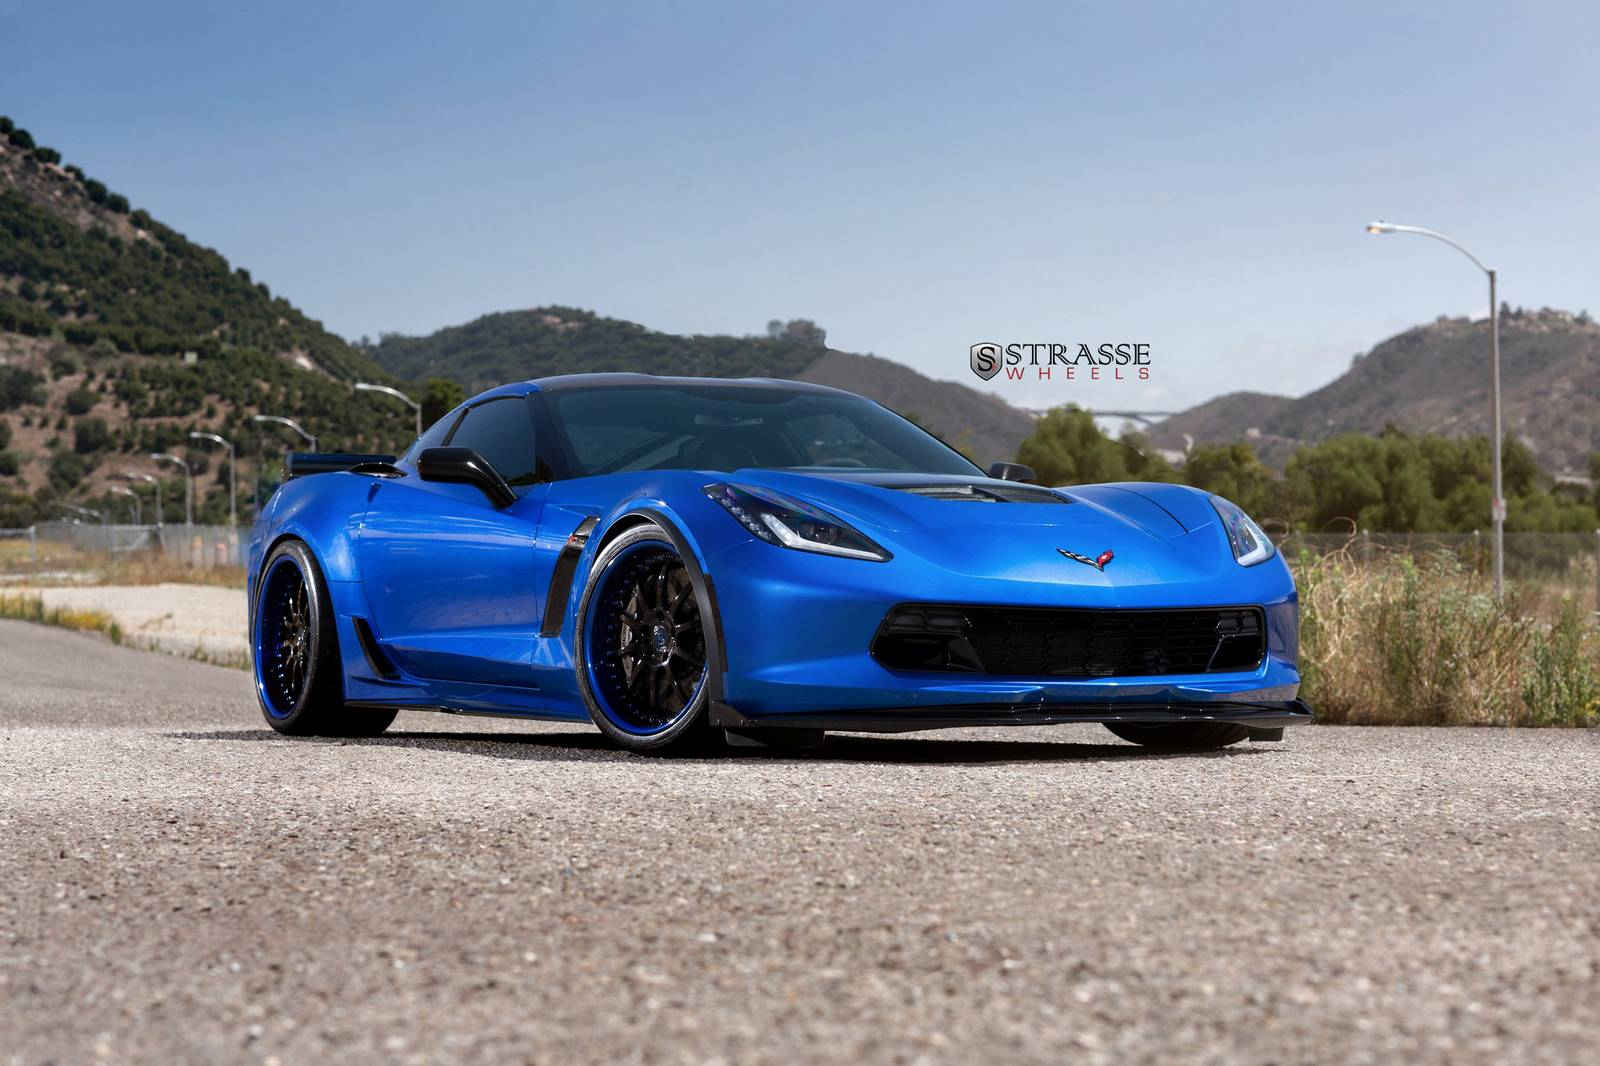 laguna blue corvette c7 z06 with strasse wheels gtspirit. Black Bedroom Furniture Sets. Home Design Ideas